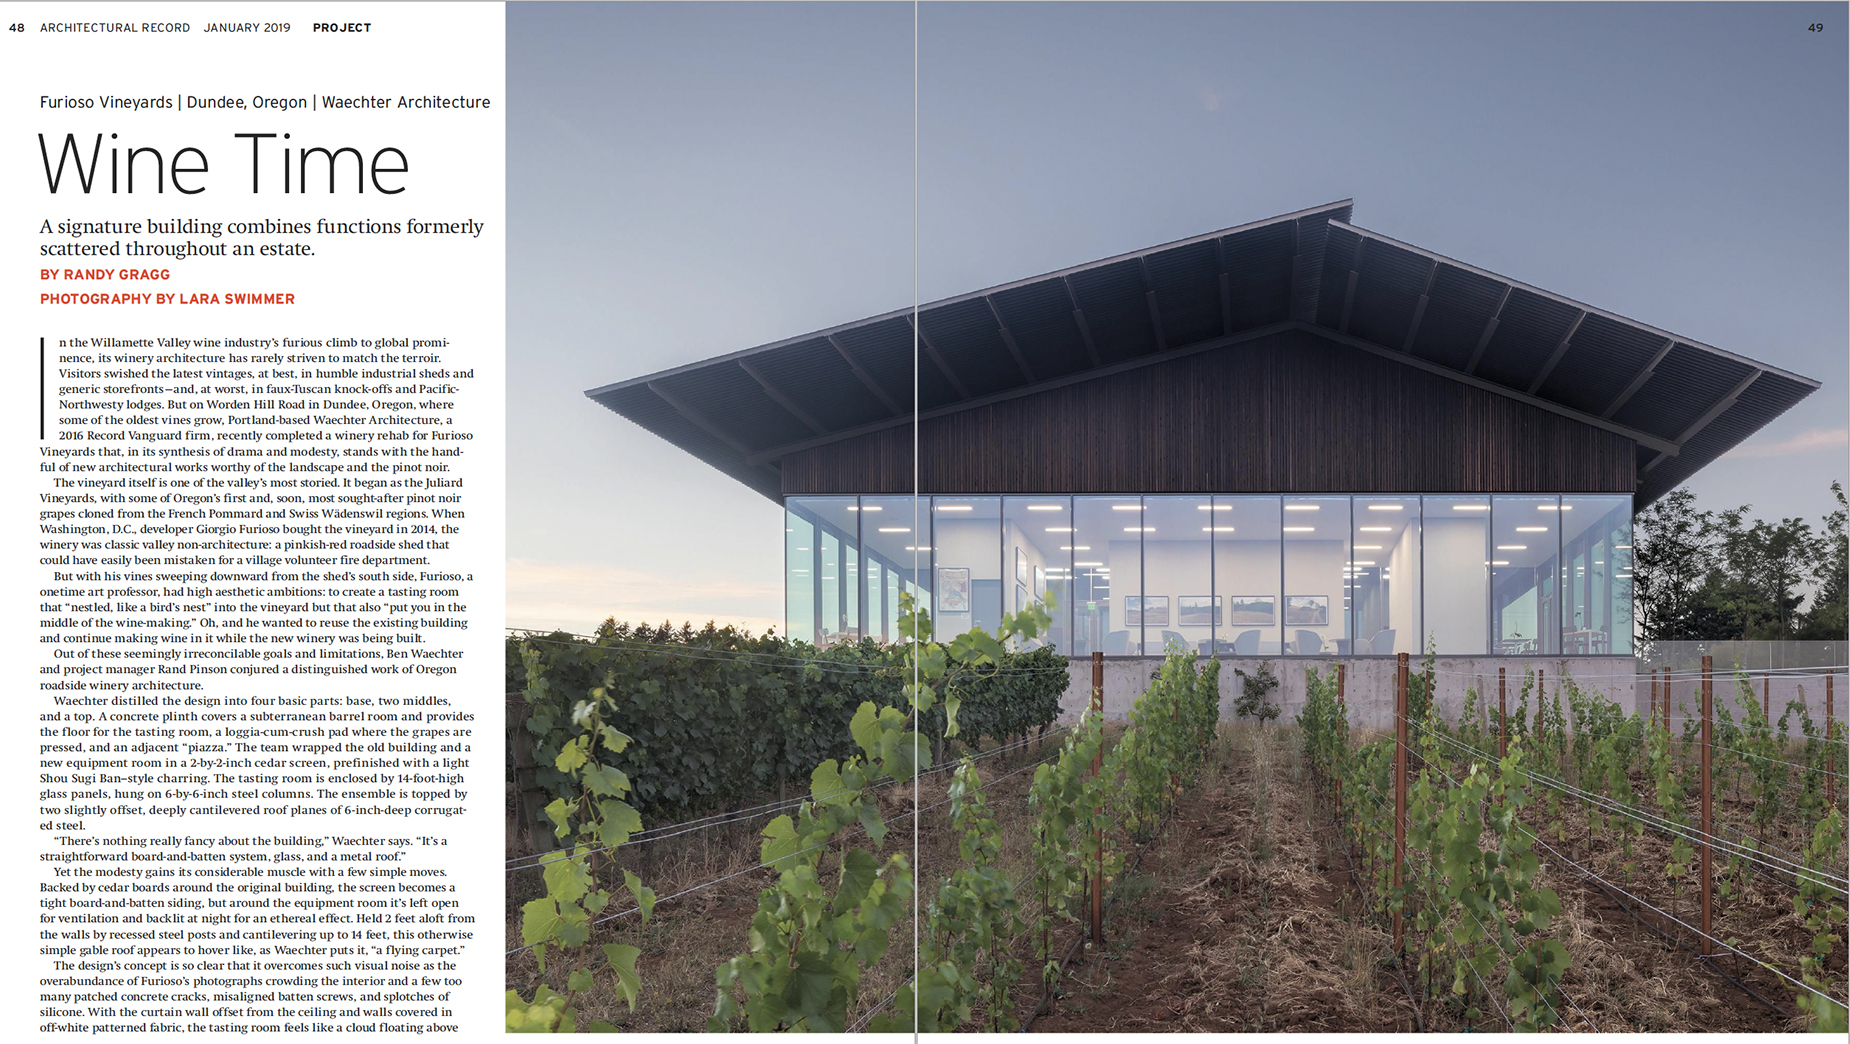 Architectural Record - Furioso Vineyards article